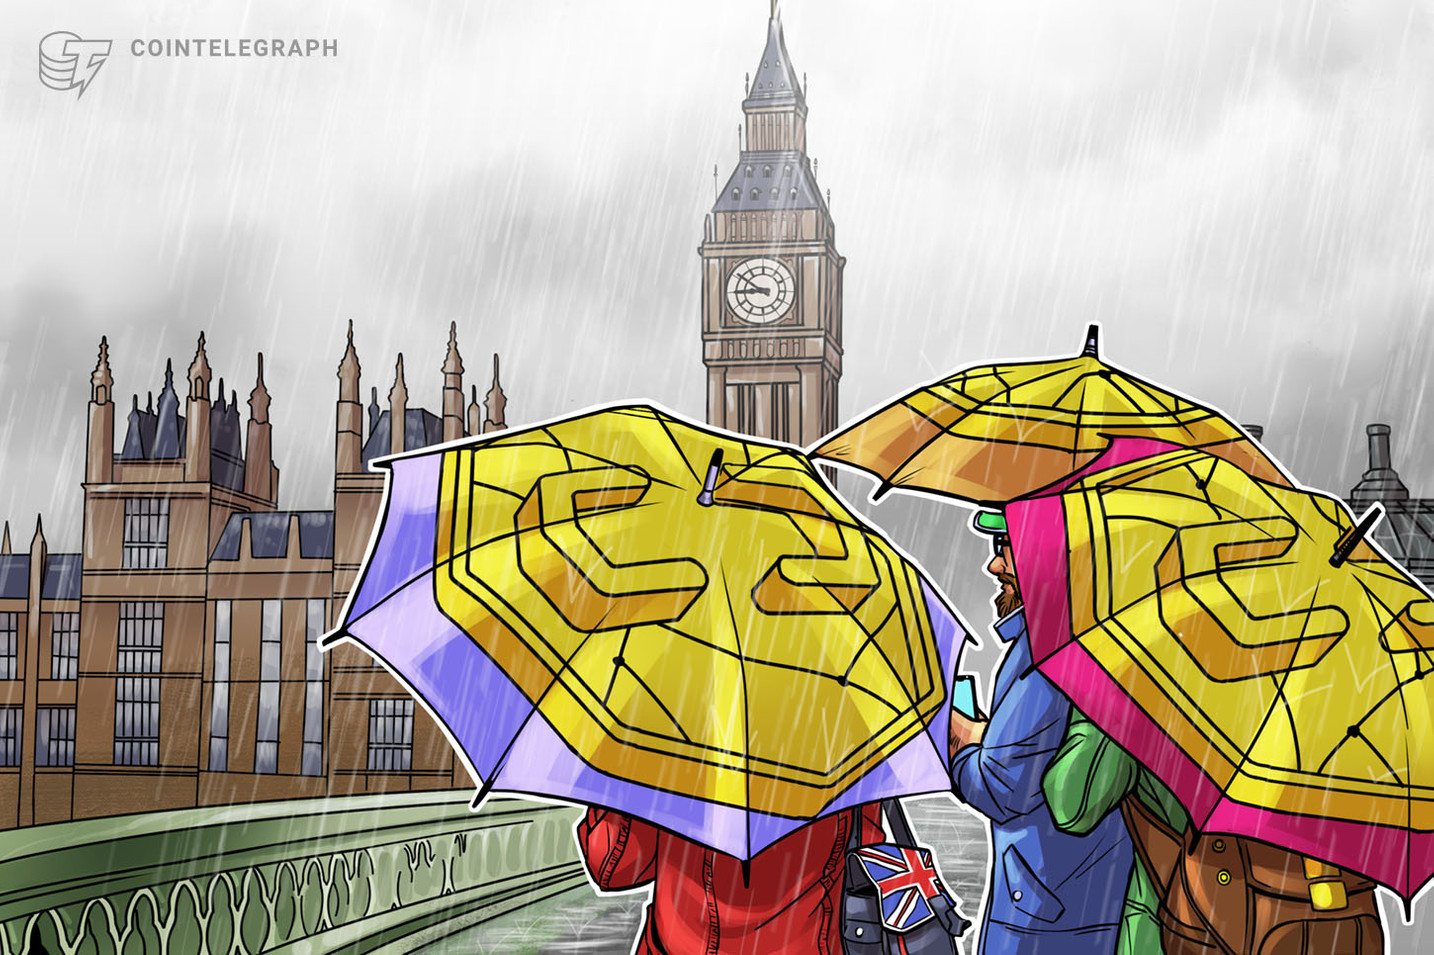 Survey finds 31% of Brits are crypto curious, but lacking information